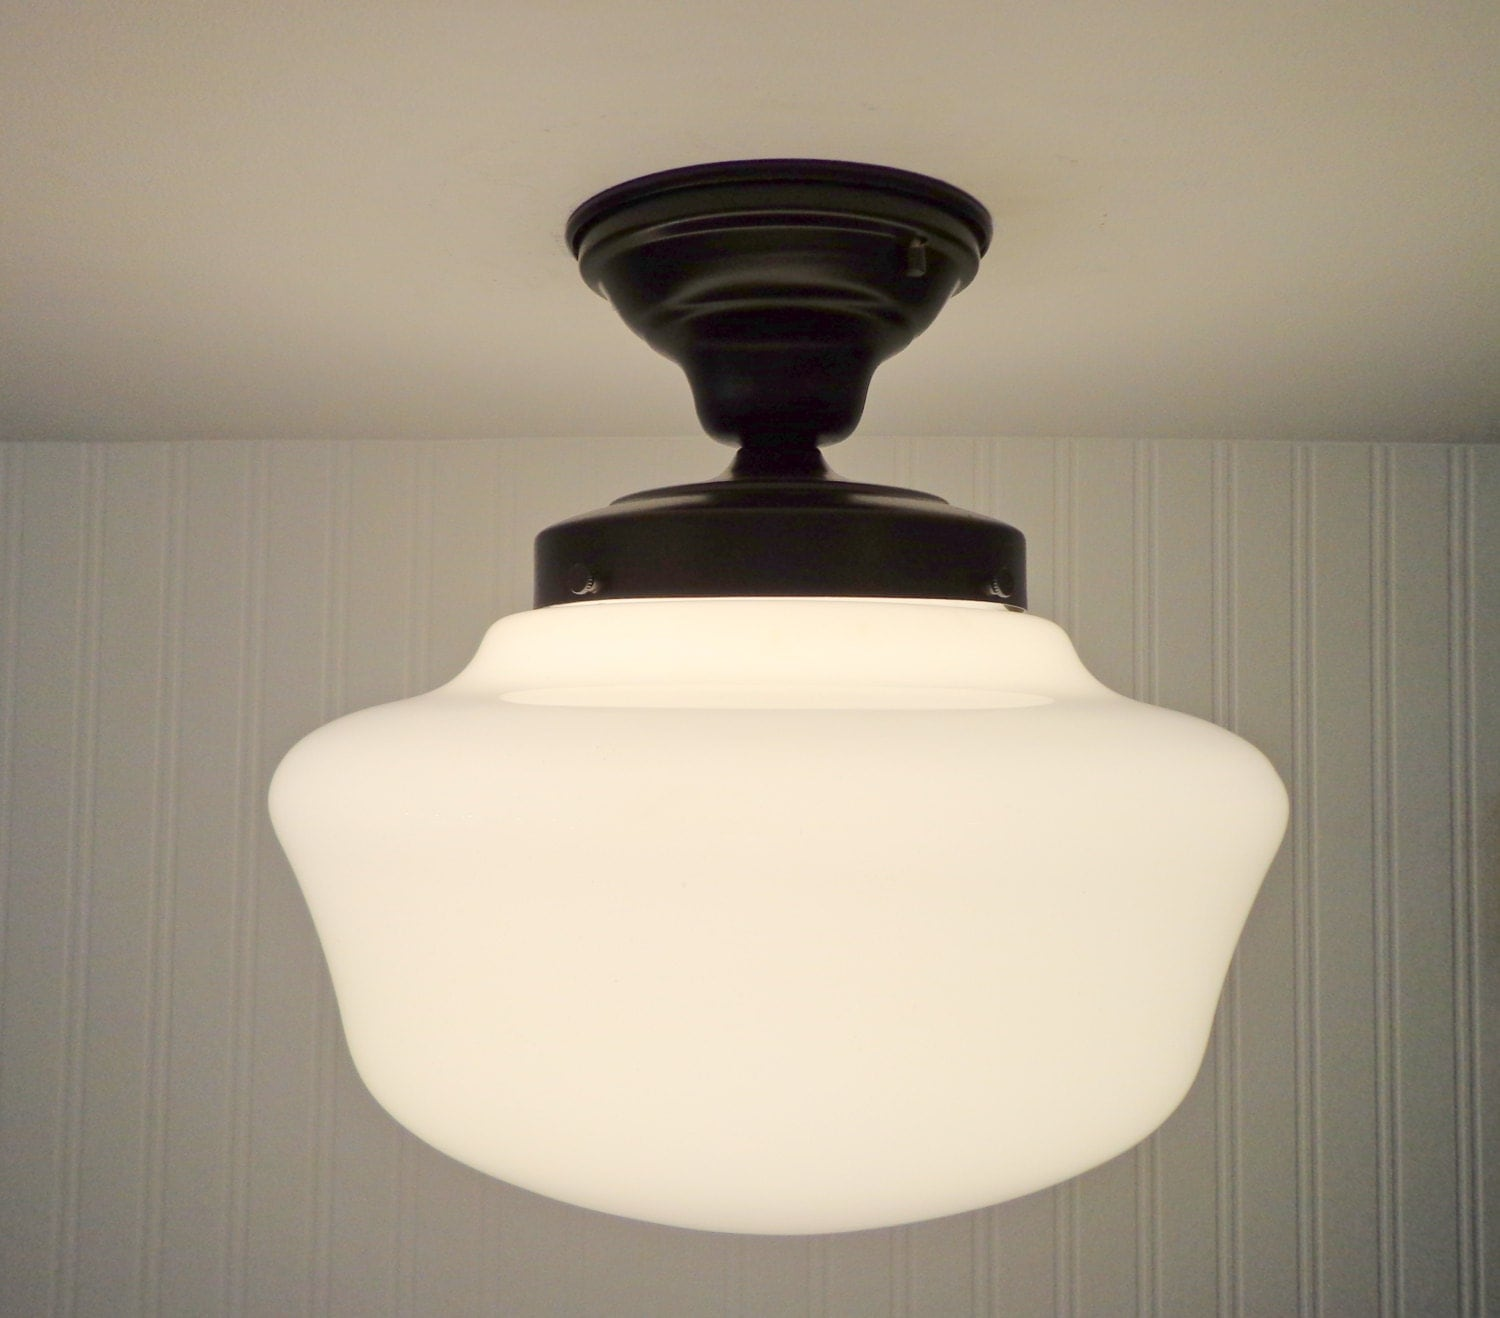 Vintage Schoolhouse Ceiling Light With Semi Flush Mount